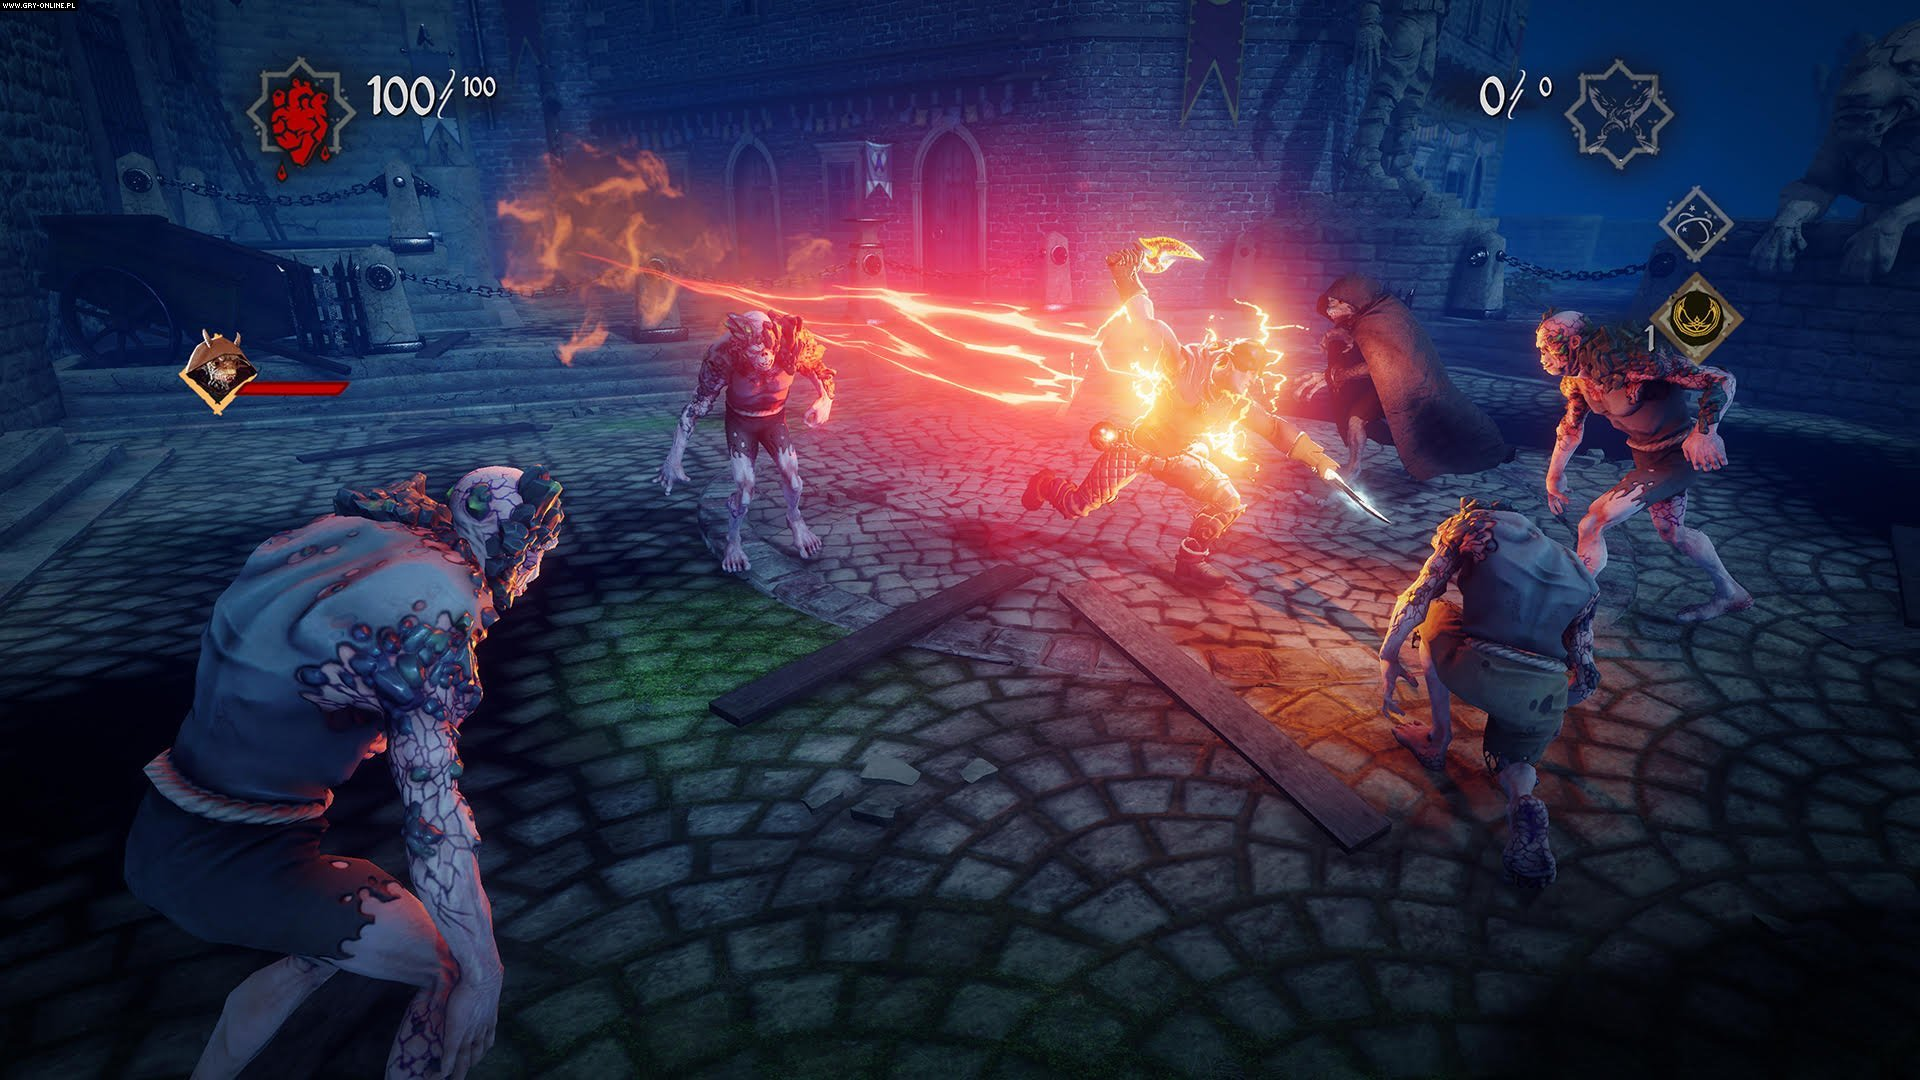 Hand of Fate 2 PC, PS4, XONE, Switch Gry Screen 3/33, Defiant Development